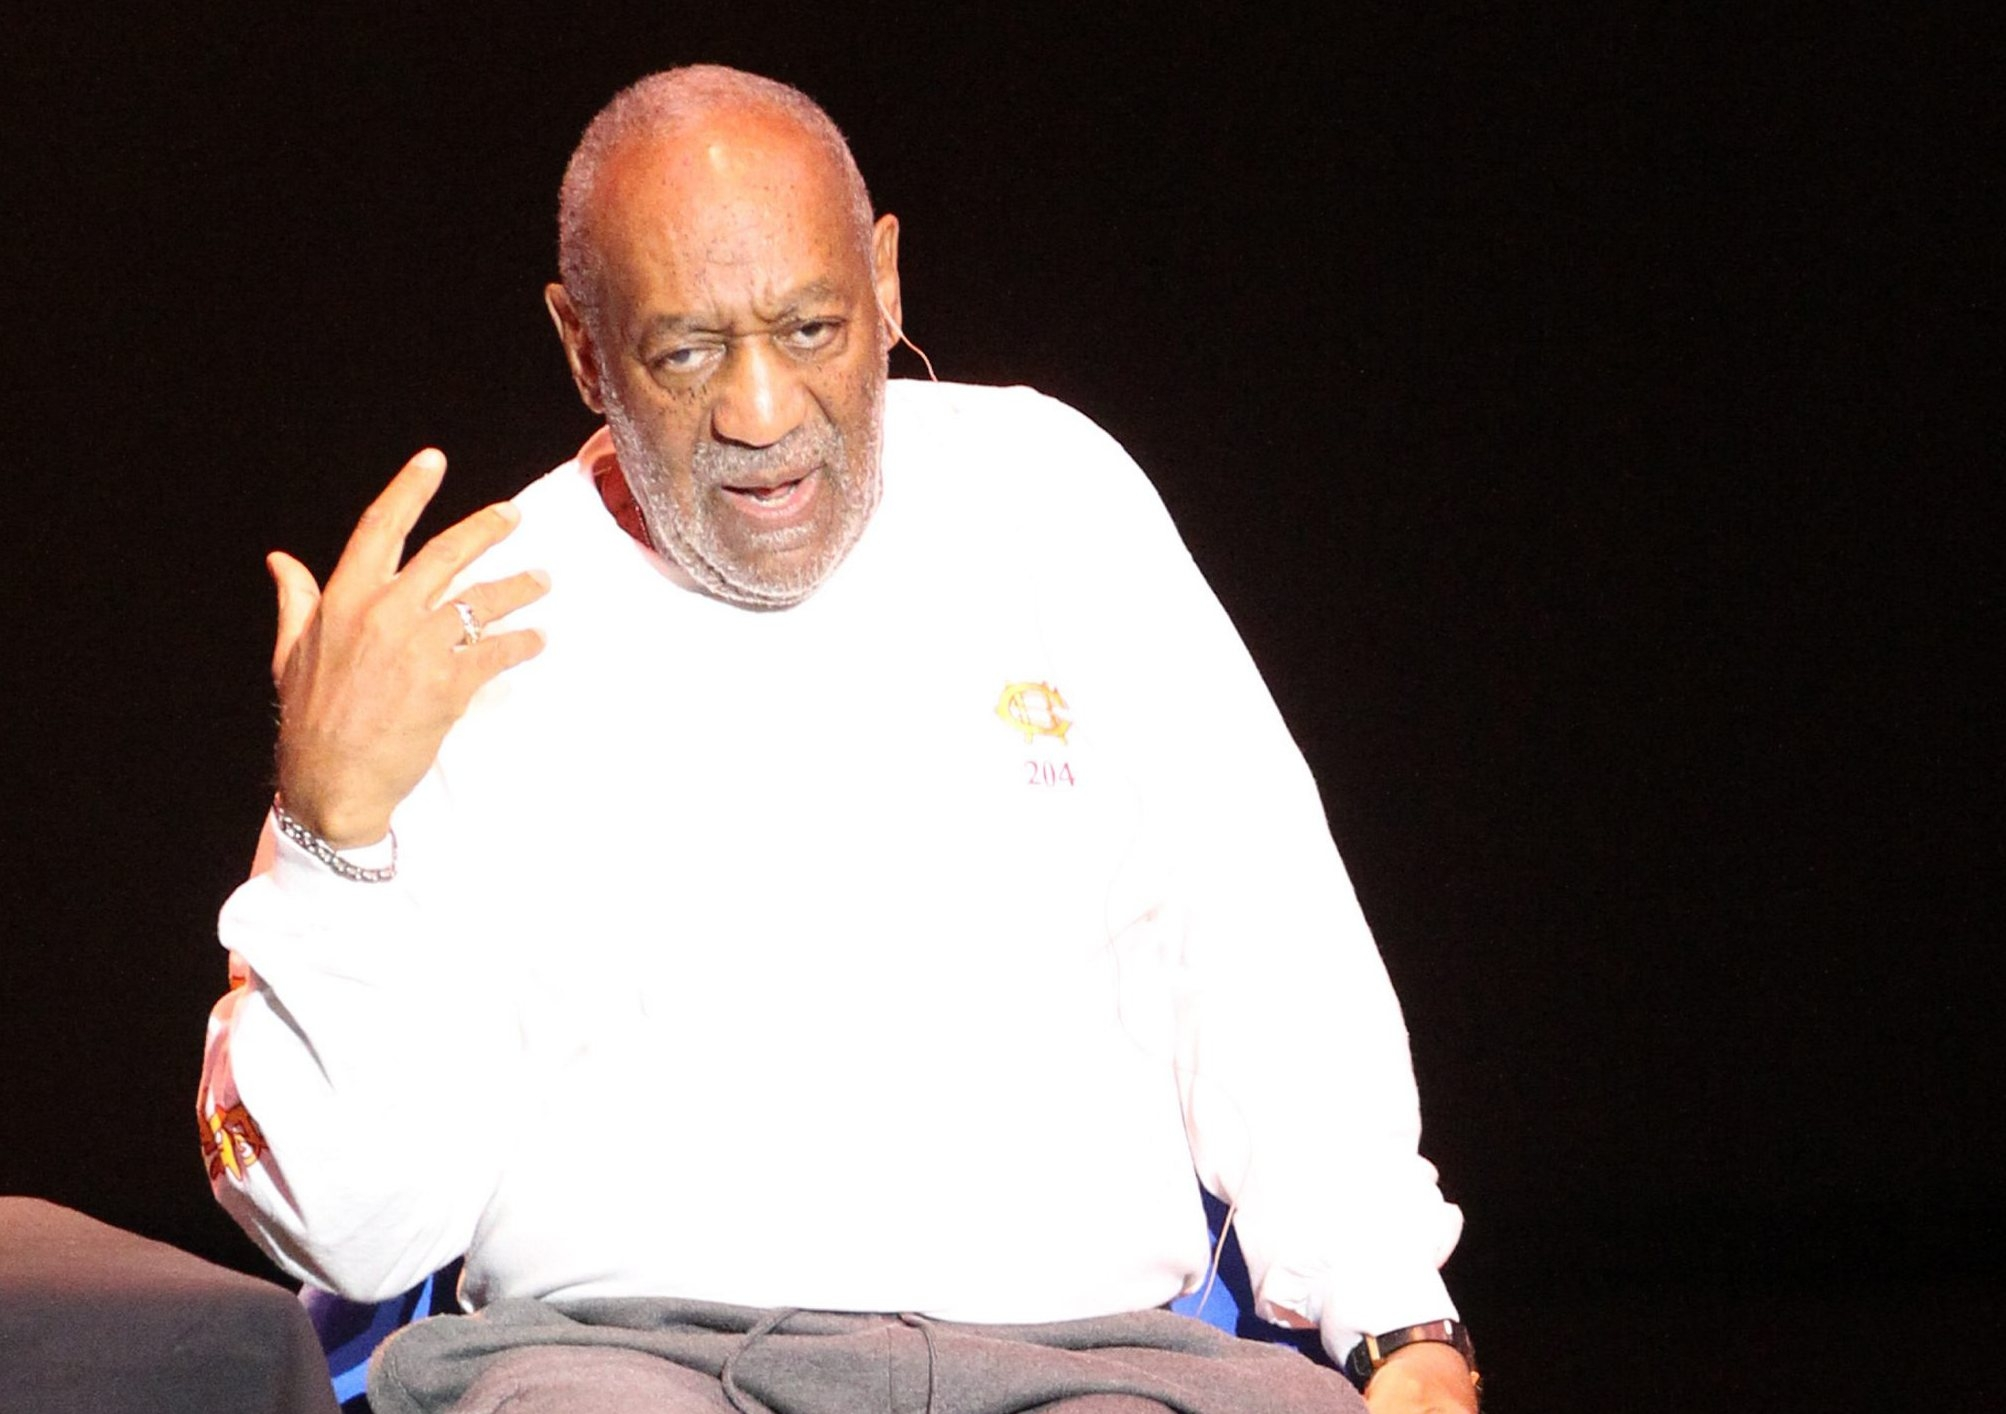 Bill Cosby sits in a chair at center stage and tells funny stories while performing Friday night in  Kleinhans Music Hall.